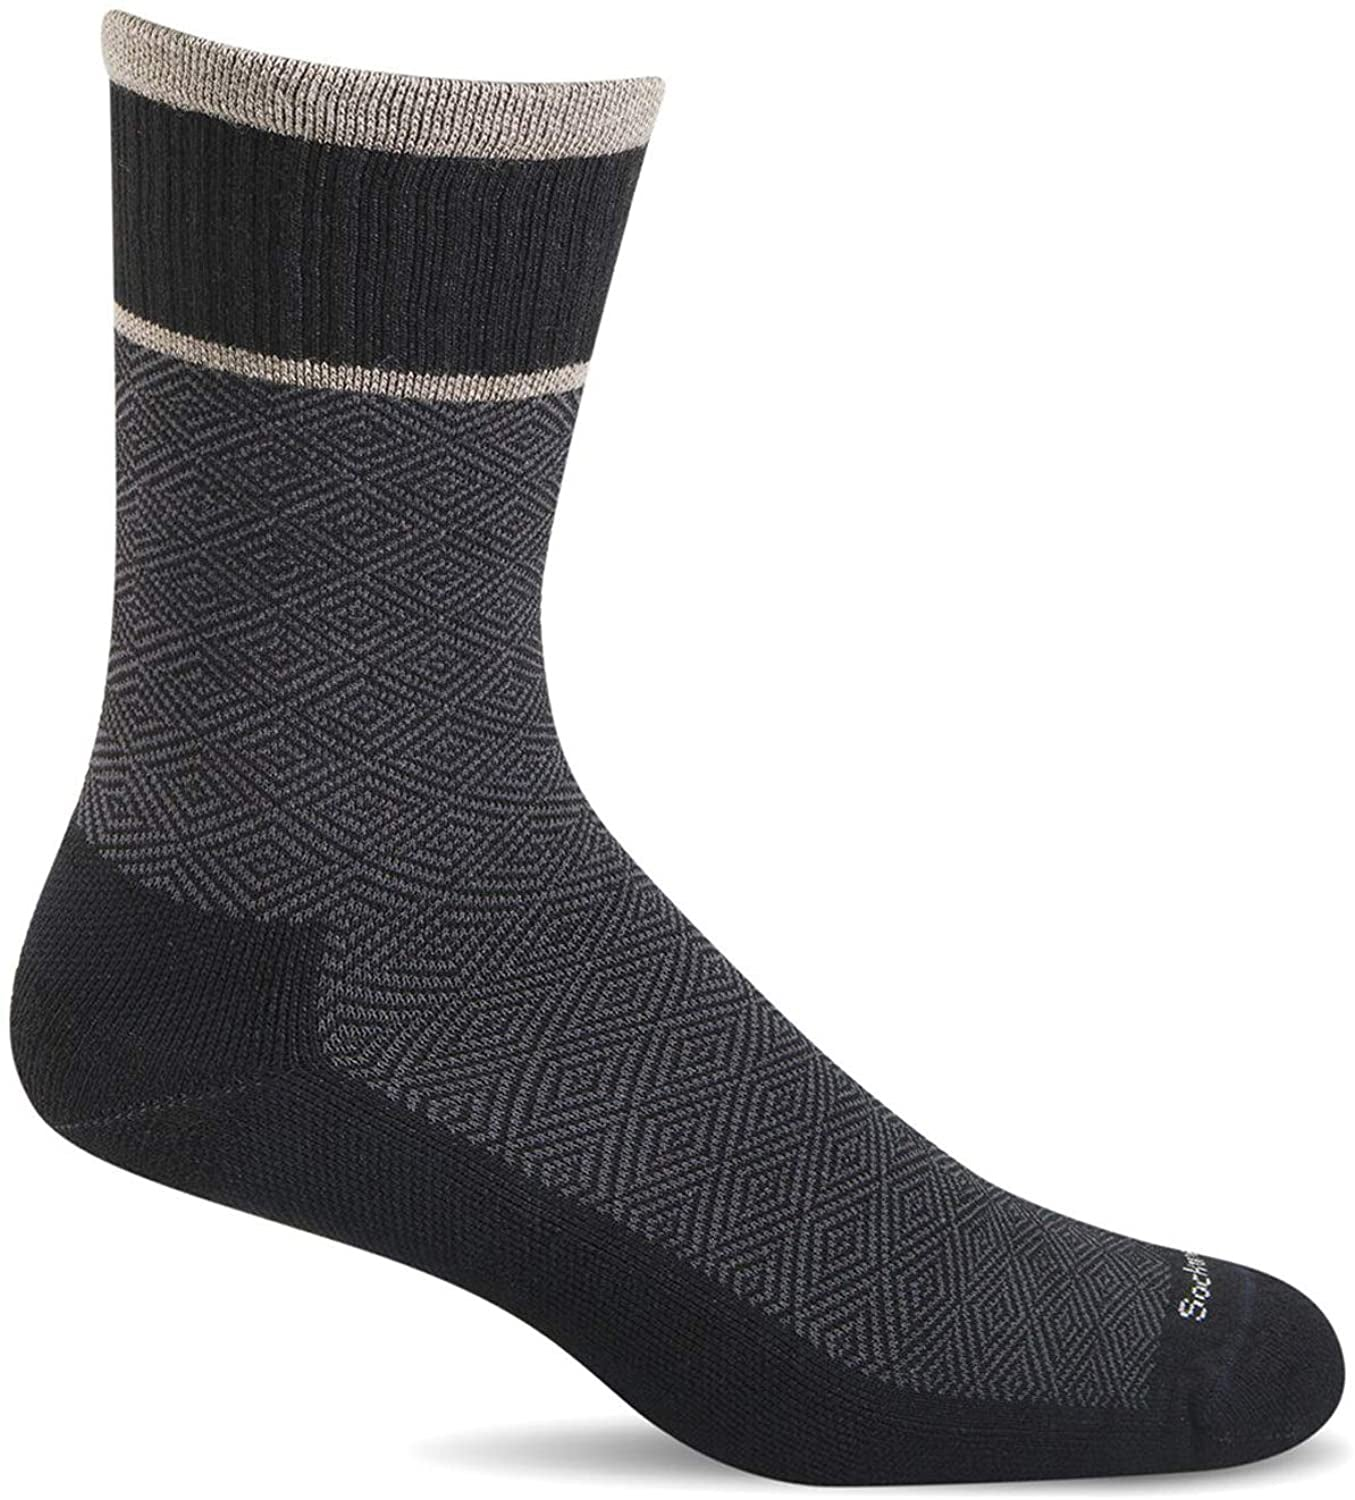 Sockwell Men's Plantar Cush Crew Sock in Black color from the side